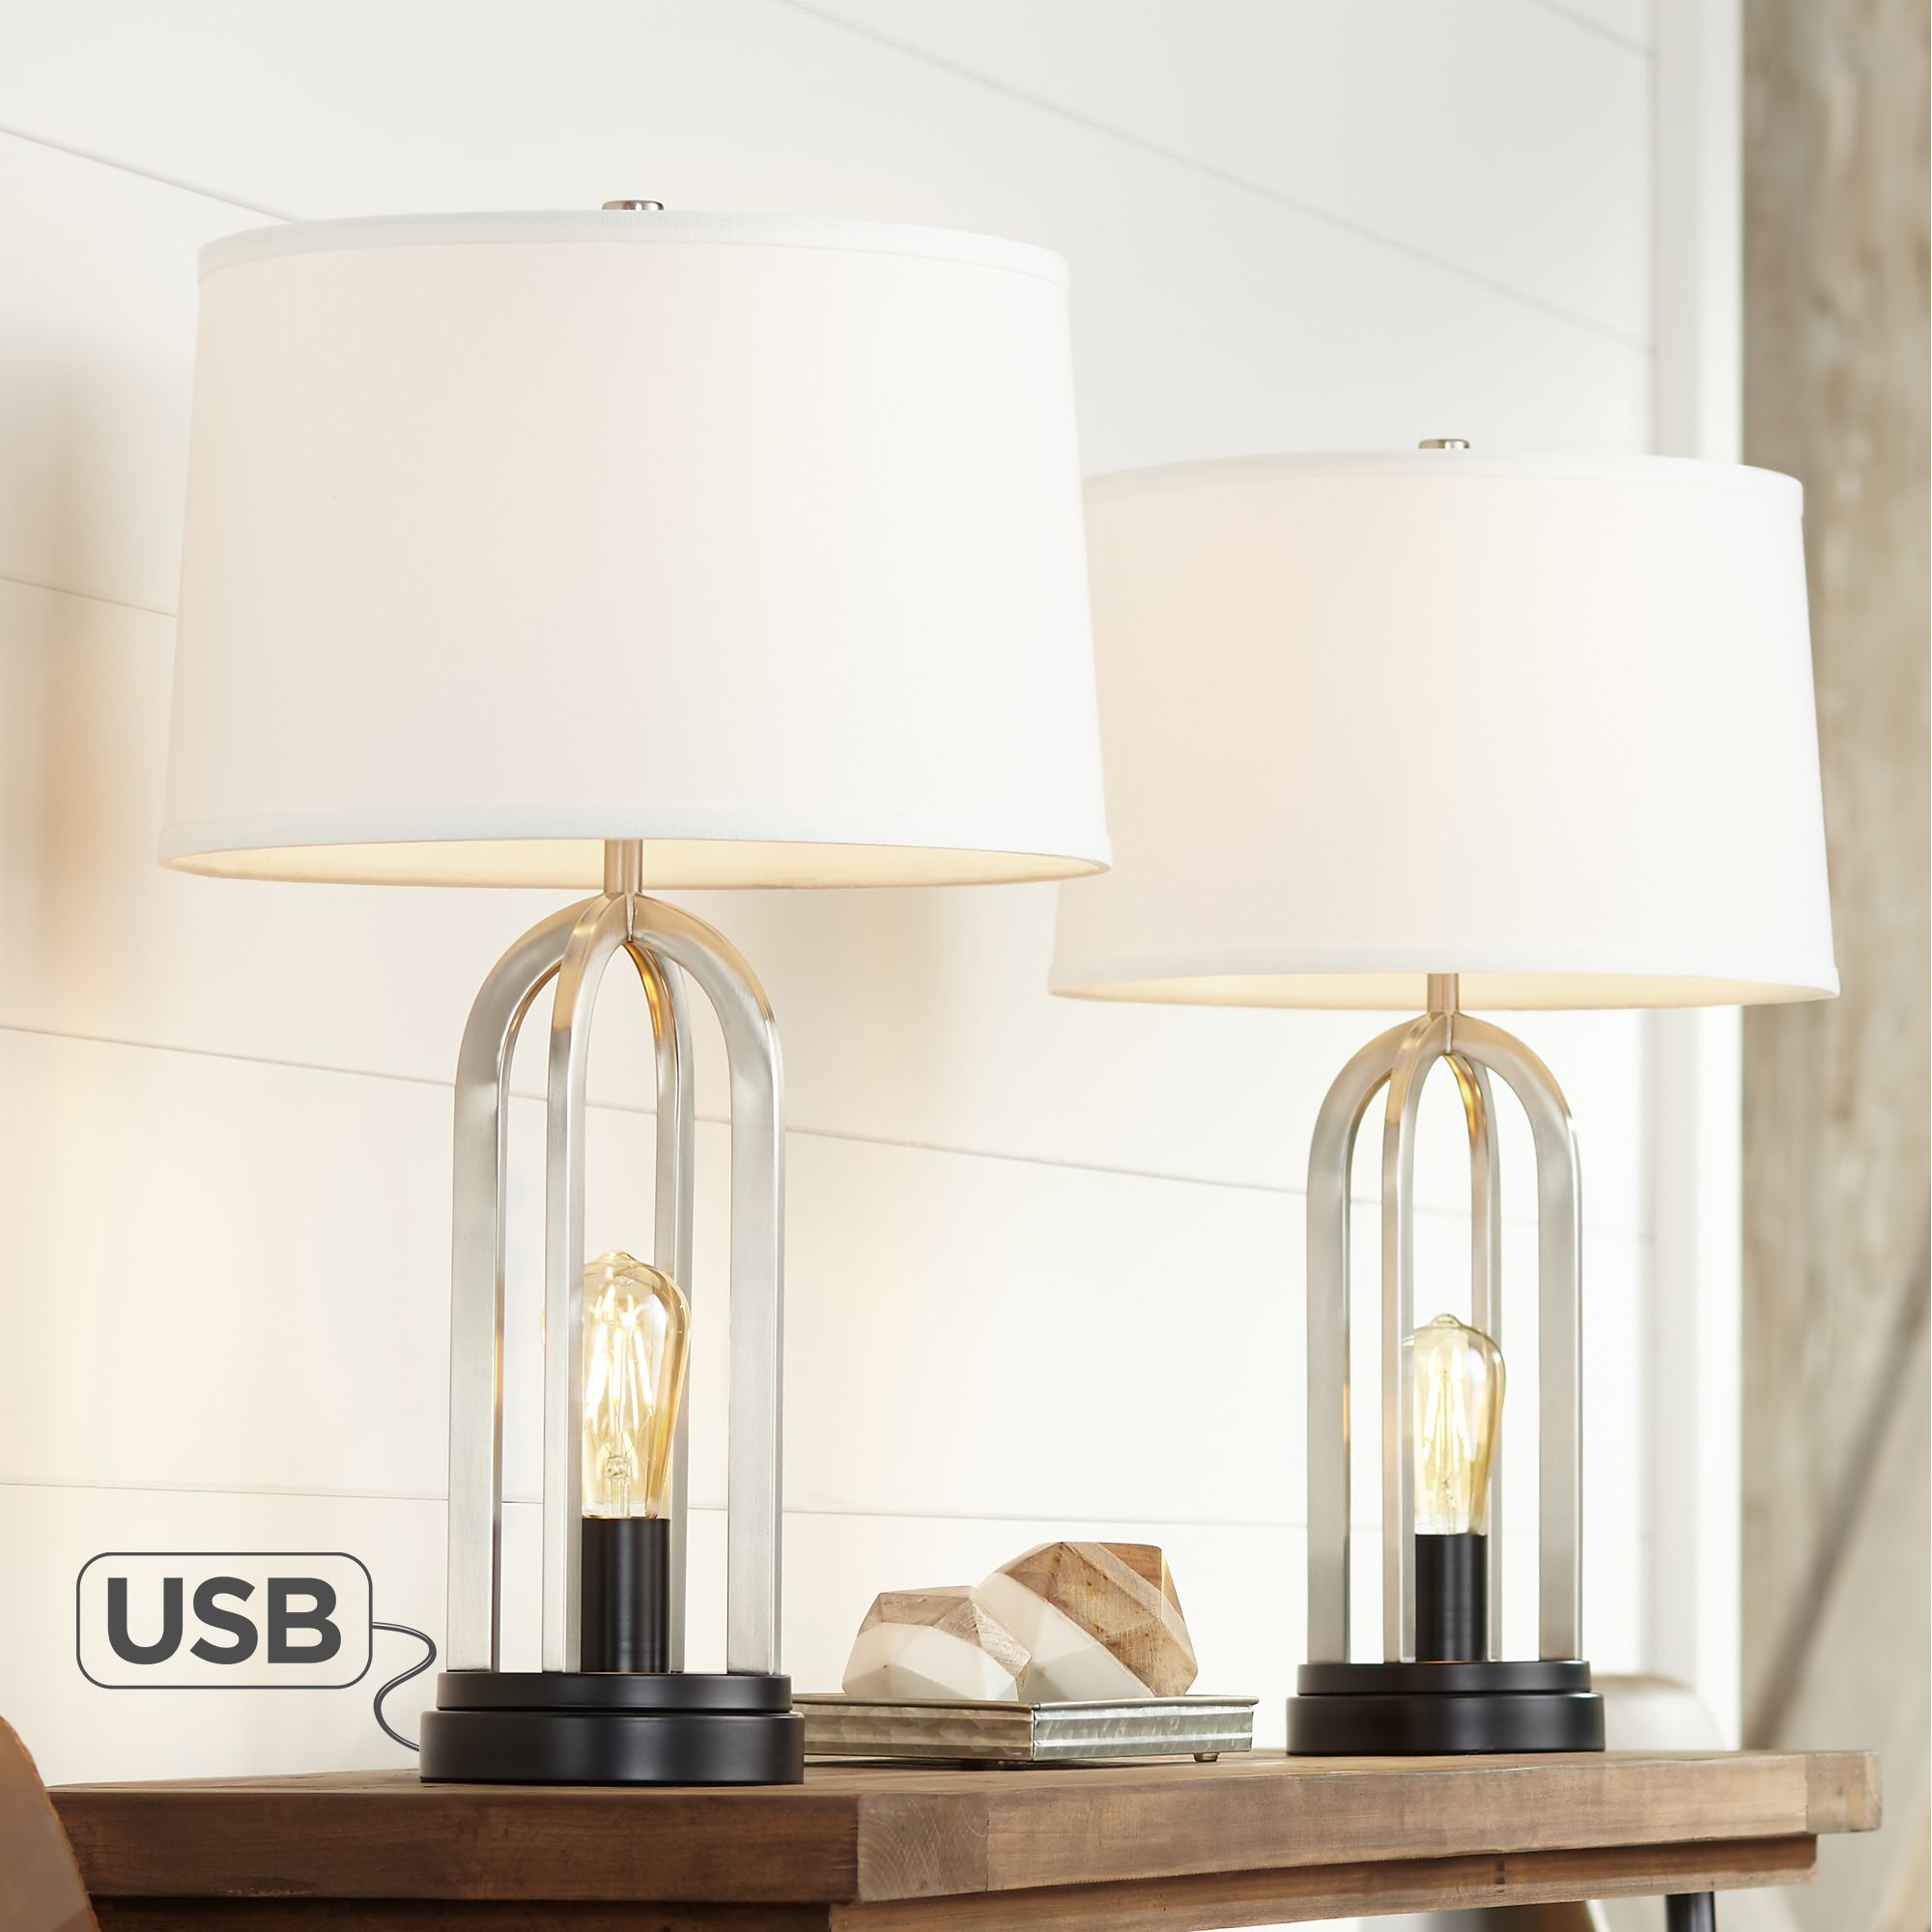 360 lighting modern table lamps set of 2 with usb port and